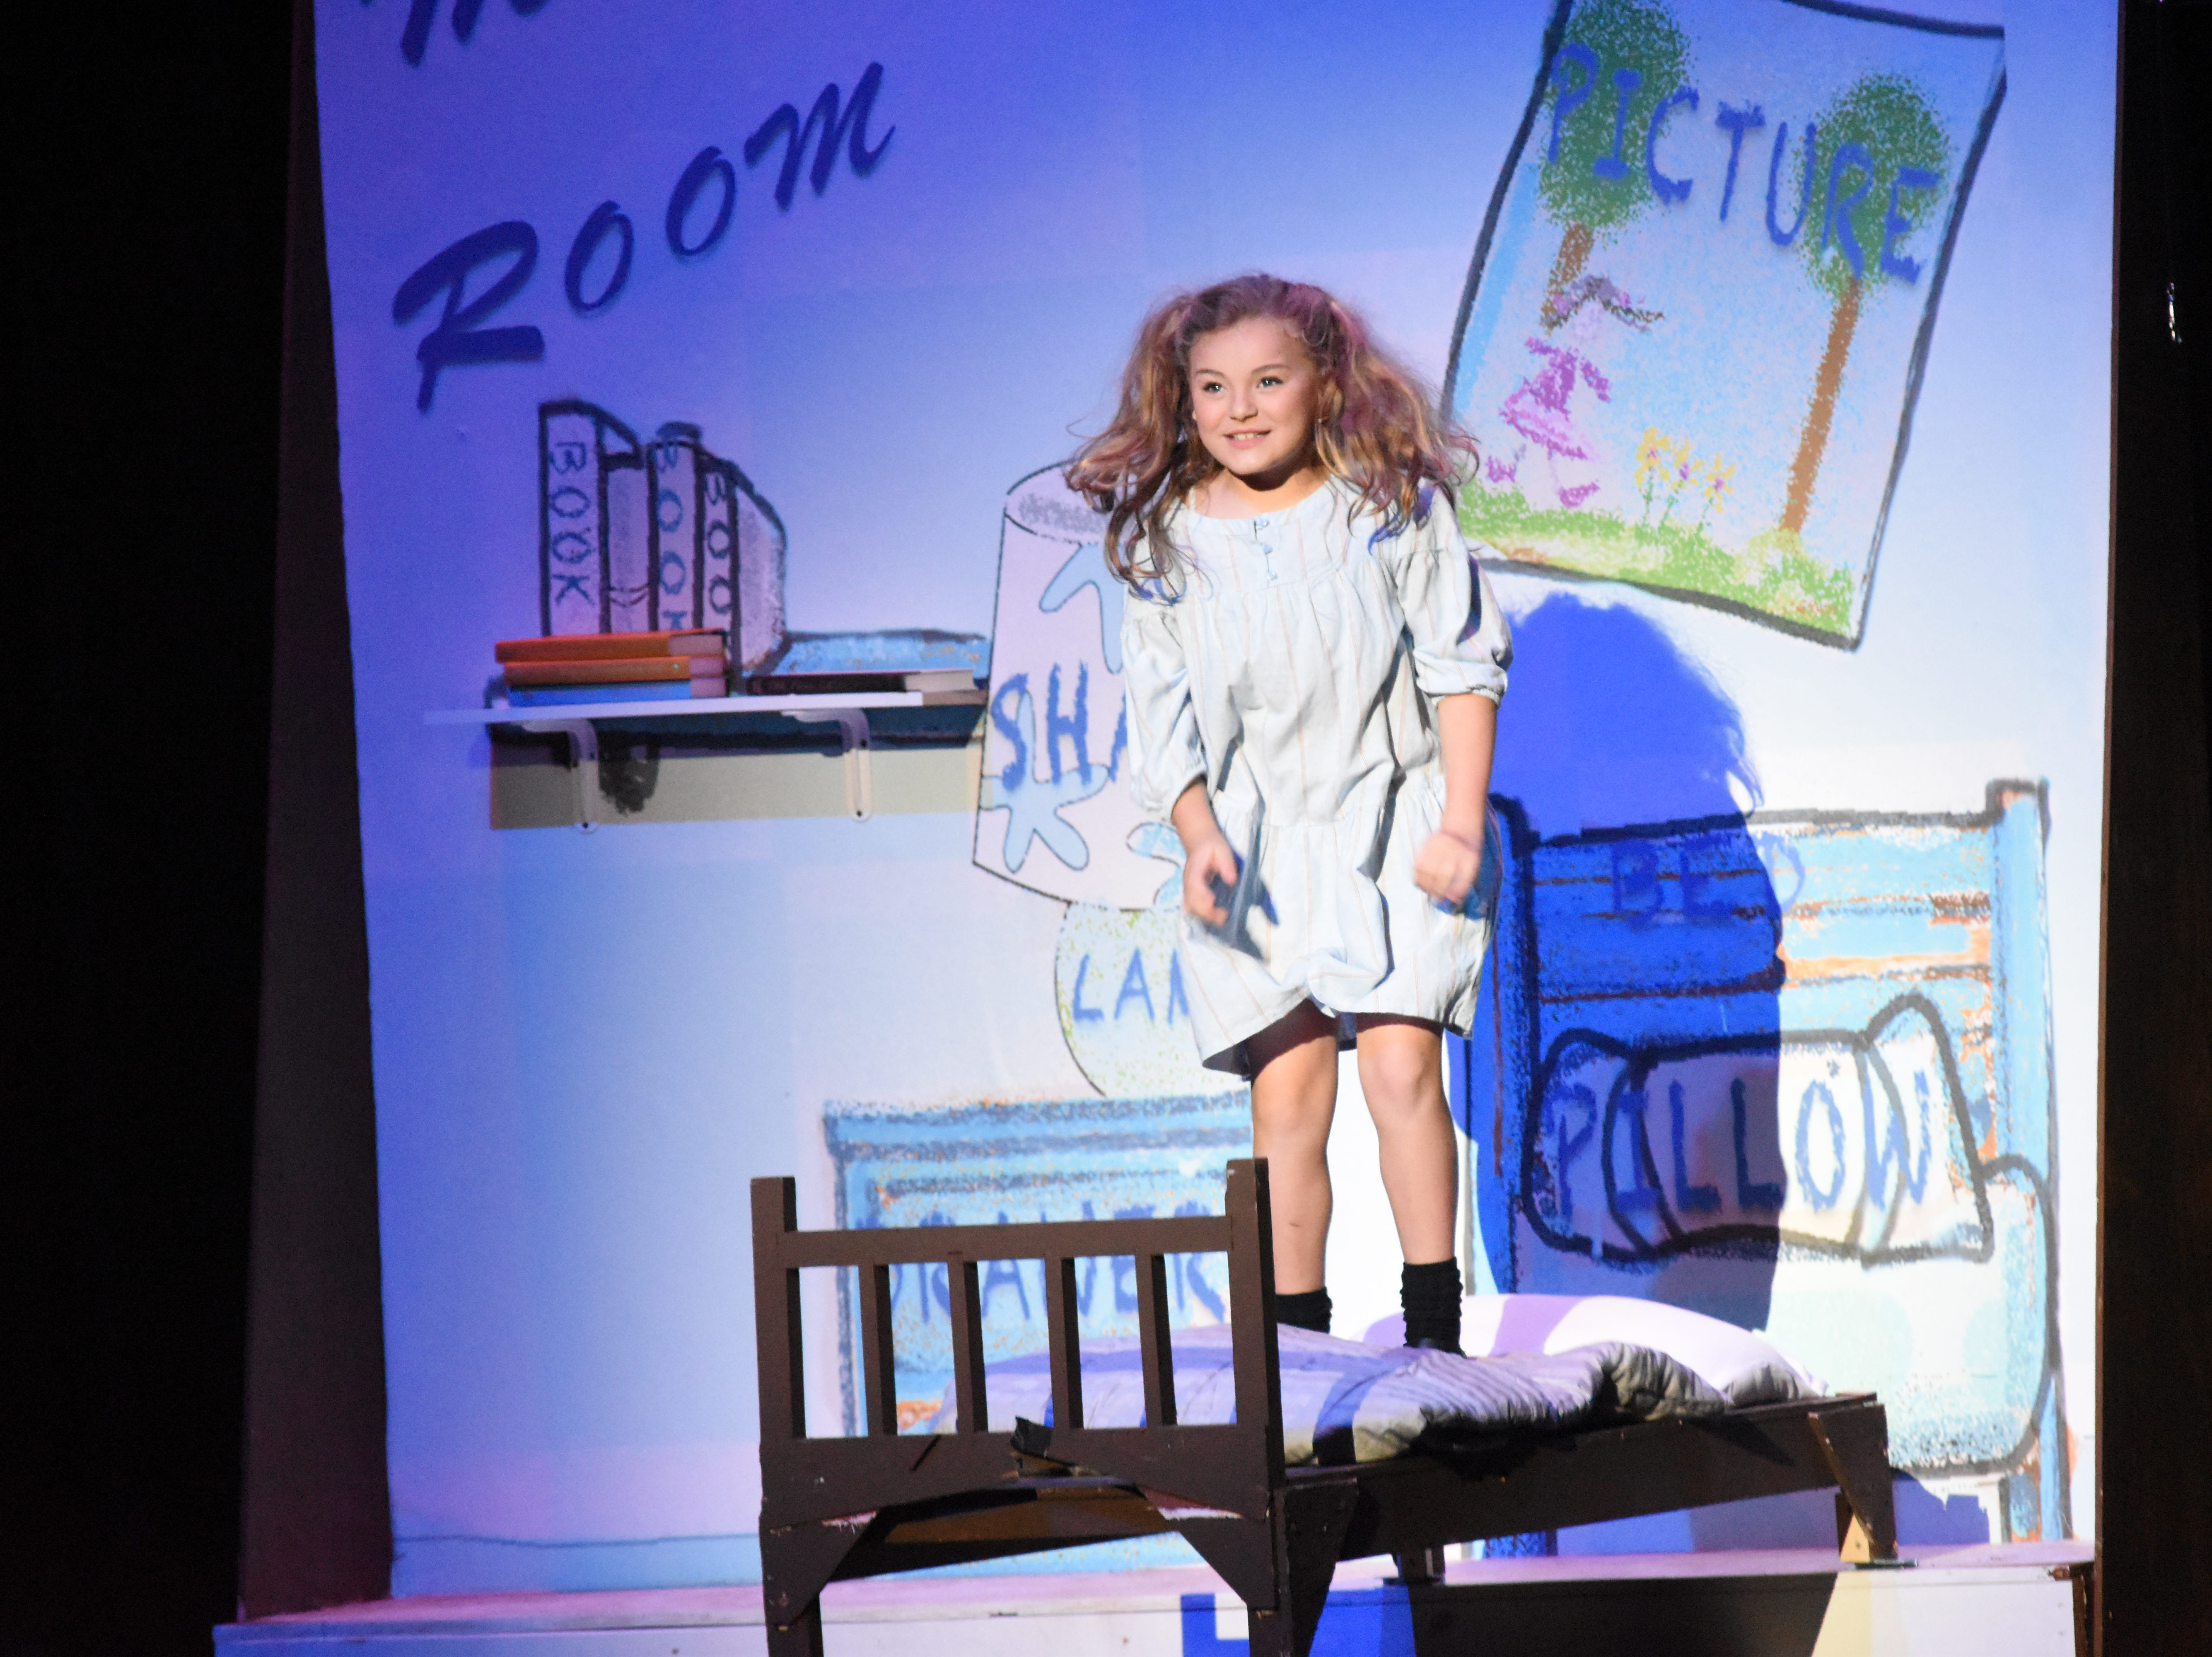 """Lagniappe Theatre Company is presenting """"Matilda the Musical"""" based on the book by Roald Dahl at 7 p.m. Thursday, Friday and Saturday and at 2:30 p.m. Sunday at the Coughlin Saunders Performing Arts Center in downtown Alexandria. Starring in the title role are Evie LaFleur and Chloe Lair. """"Matilda the Musical"""" is the story of an intelligent young girl who is born into an unloving family. She is sent away to school where her kind schoolteacher is impressed with her. The school's headmistress, however, doesn't like children doles out cruel punishments for those who break her rules."""